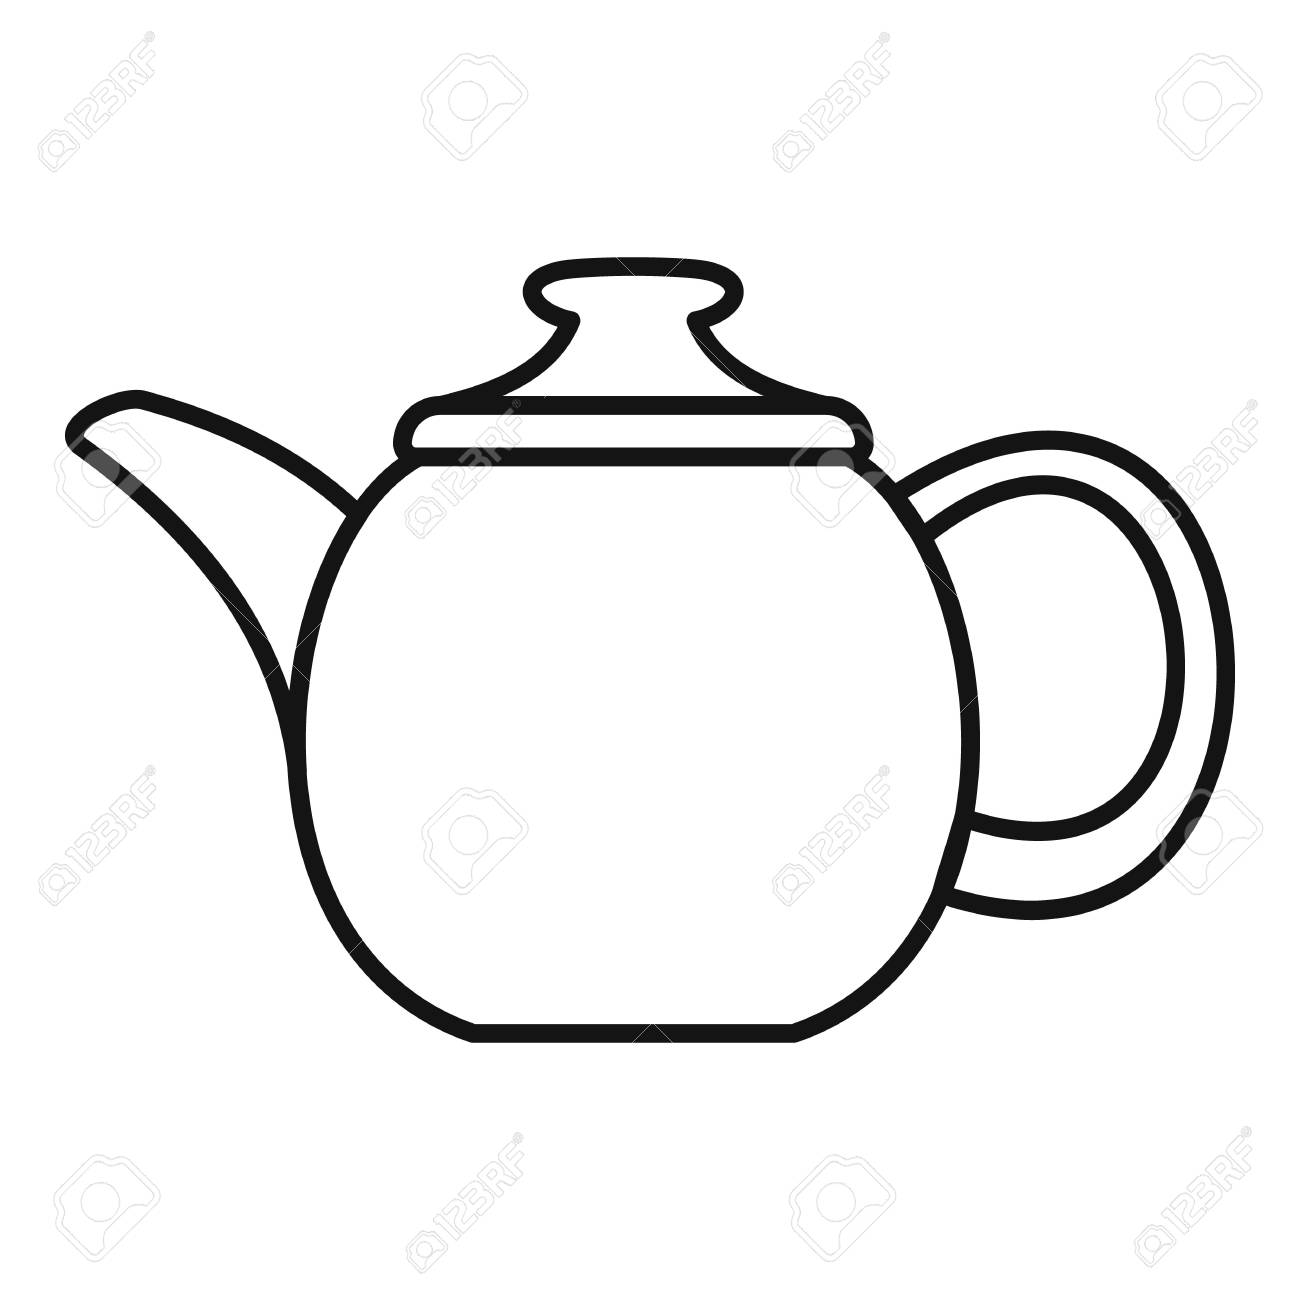 Outline Illustration Of Teapot For Making Tea And Coffee Royalty Free  Cliparts, Vectors, And Stock Illustration. Image 45587838.